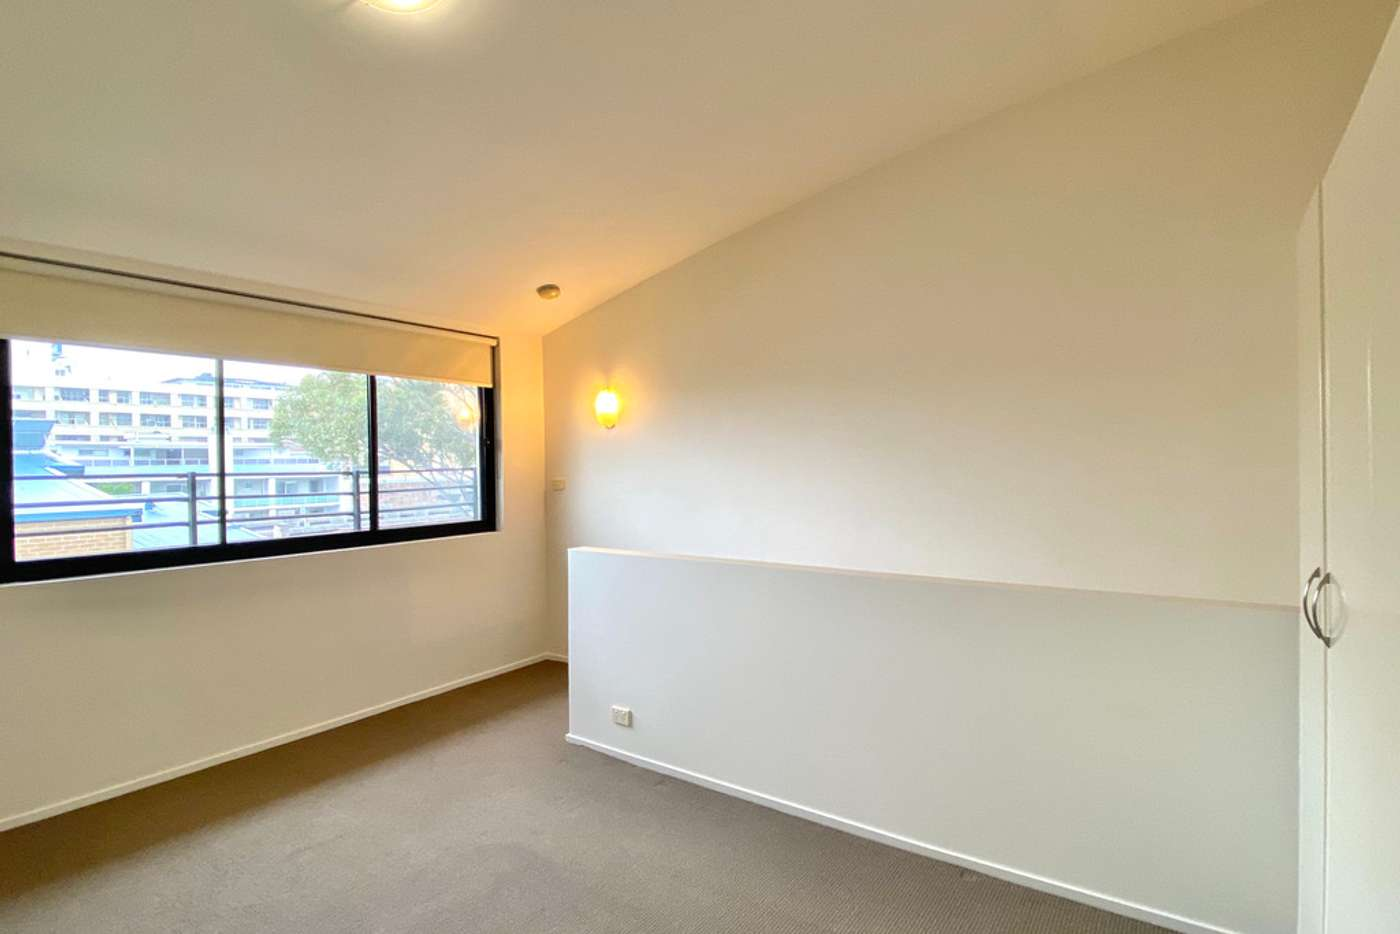 Sixth view of Homely unit listing, 14/8-14 Dunblane Street, Camperdown NSW 2050